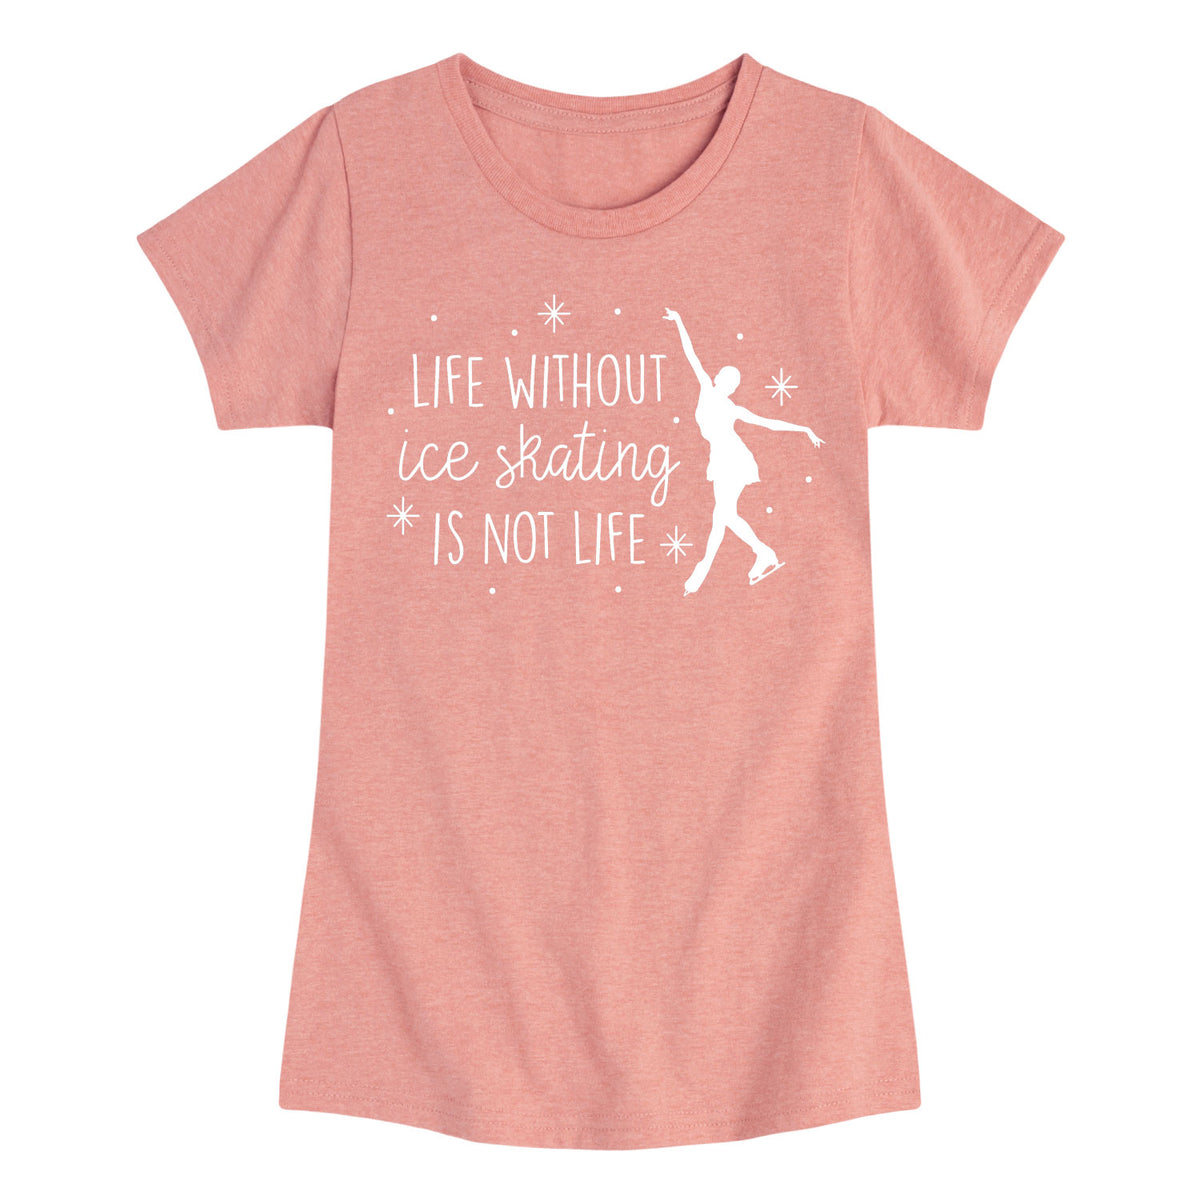 Life Without Ice Skating - Youth & Toddler Girls Short Sleeve T-Shirt